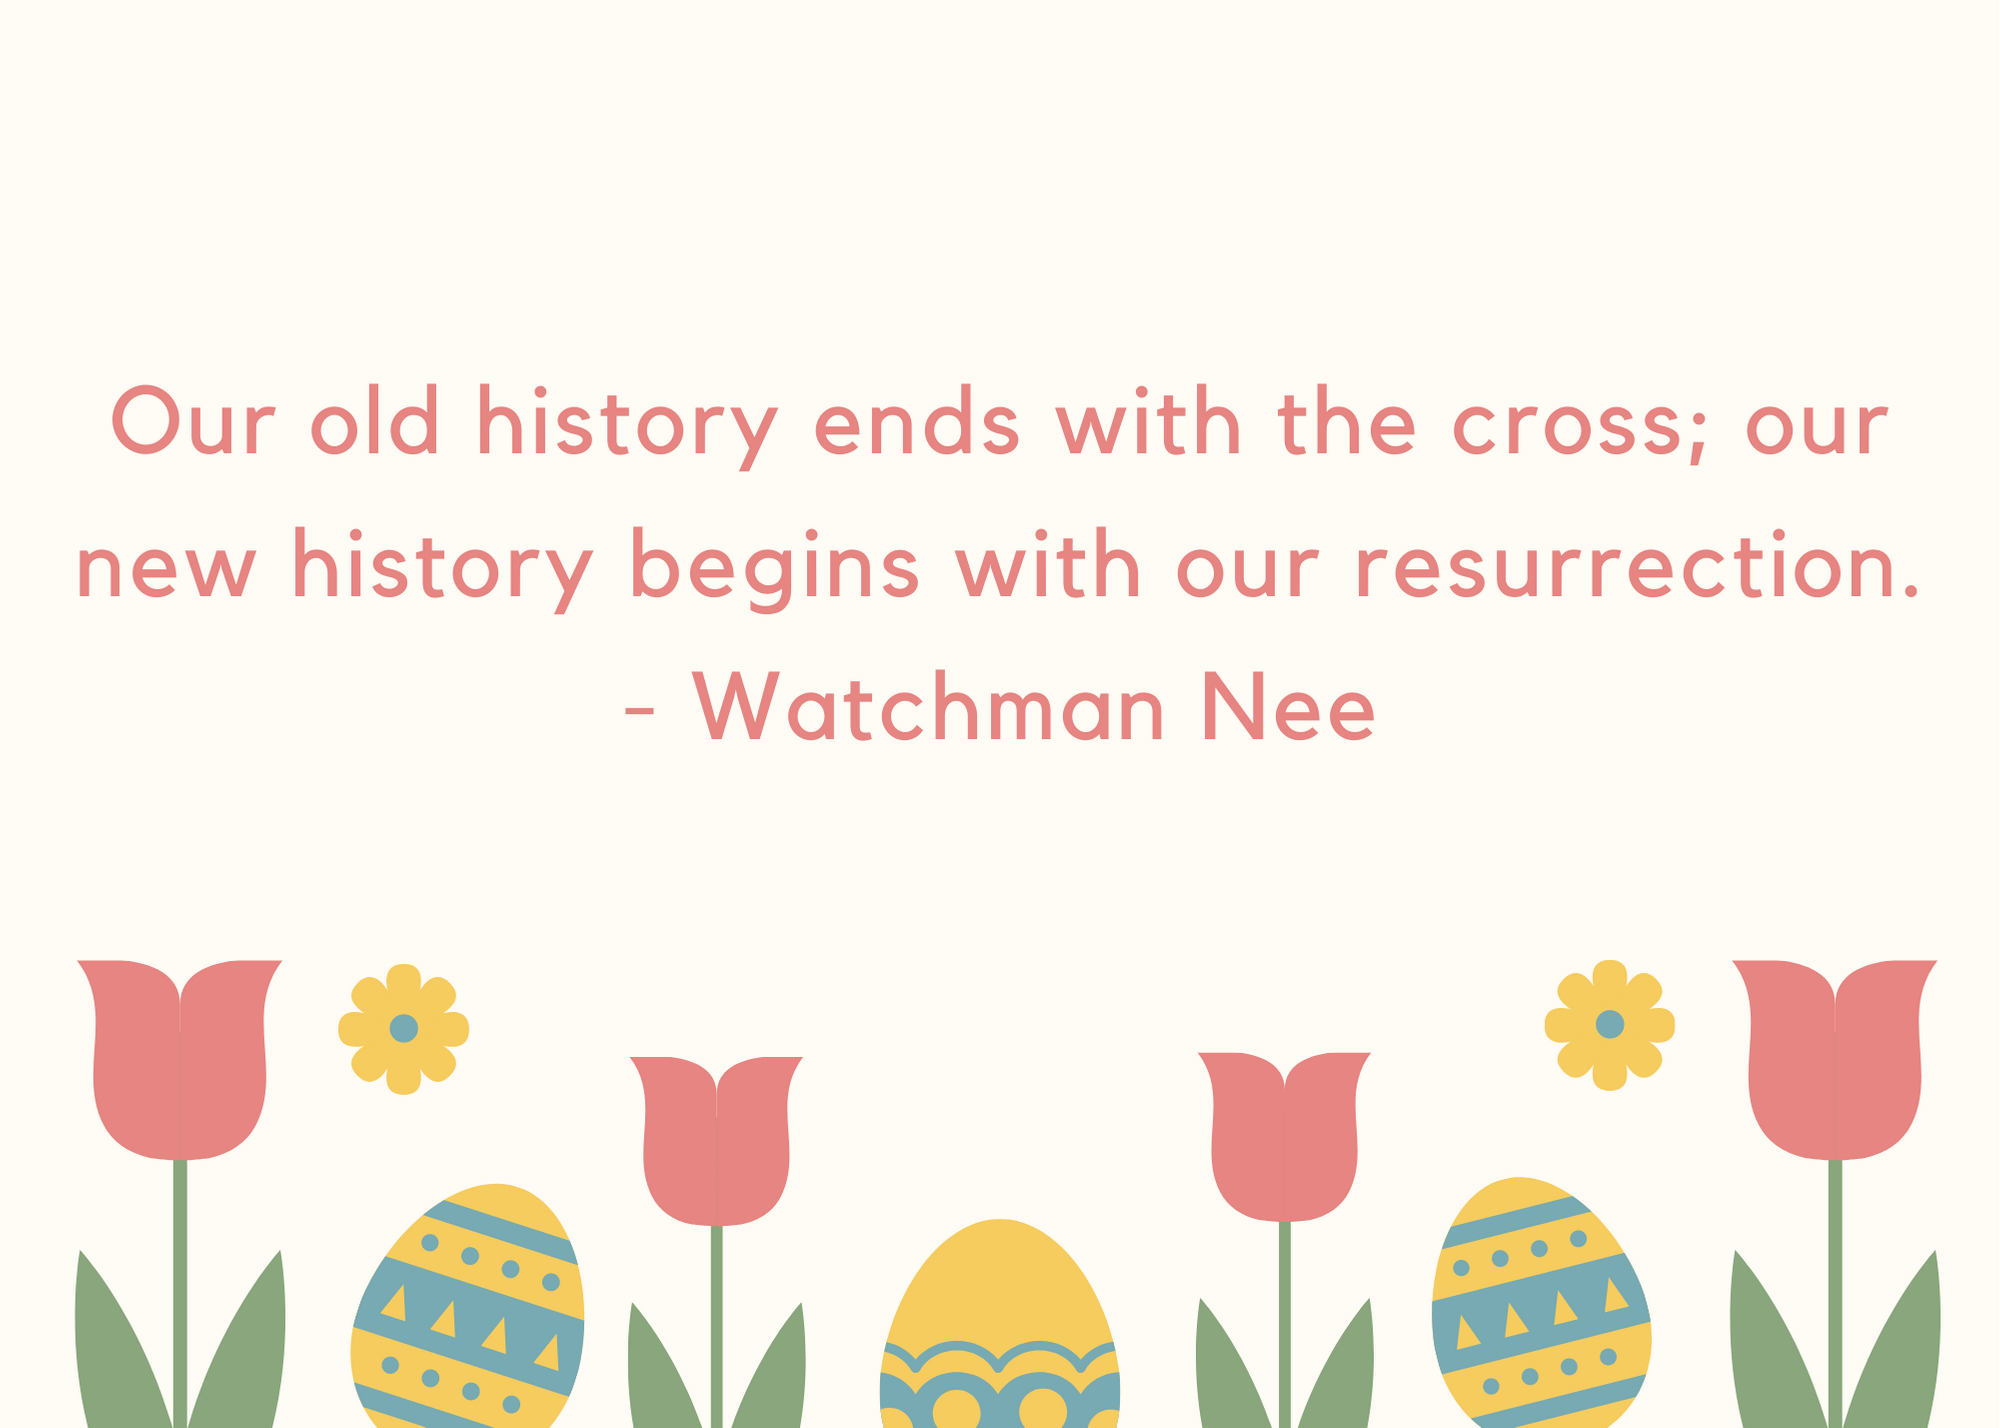 Our old history ends with the cross; our new history begins with our resurrection. Watchman Nee